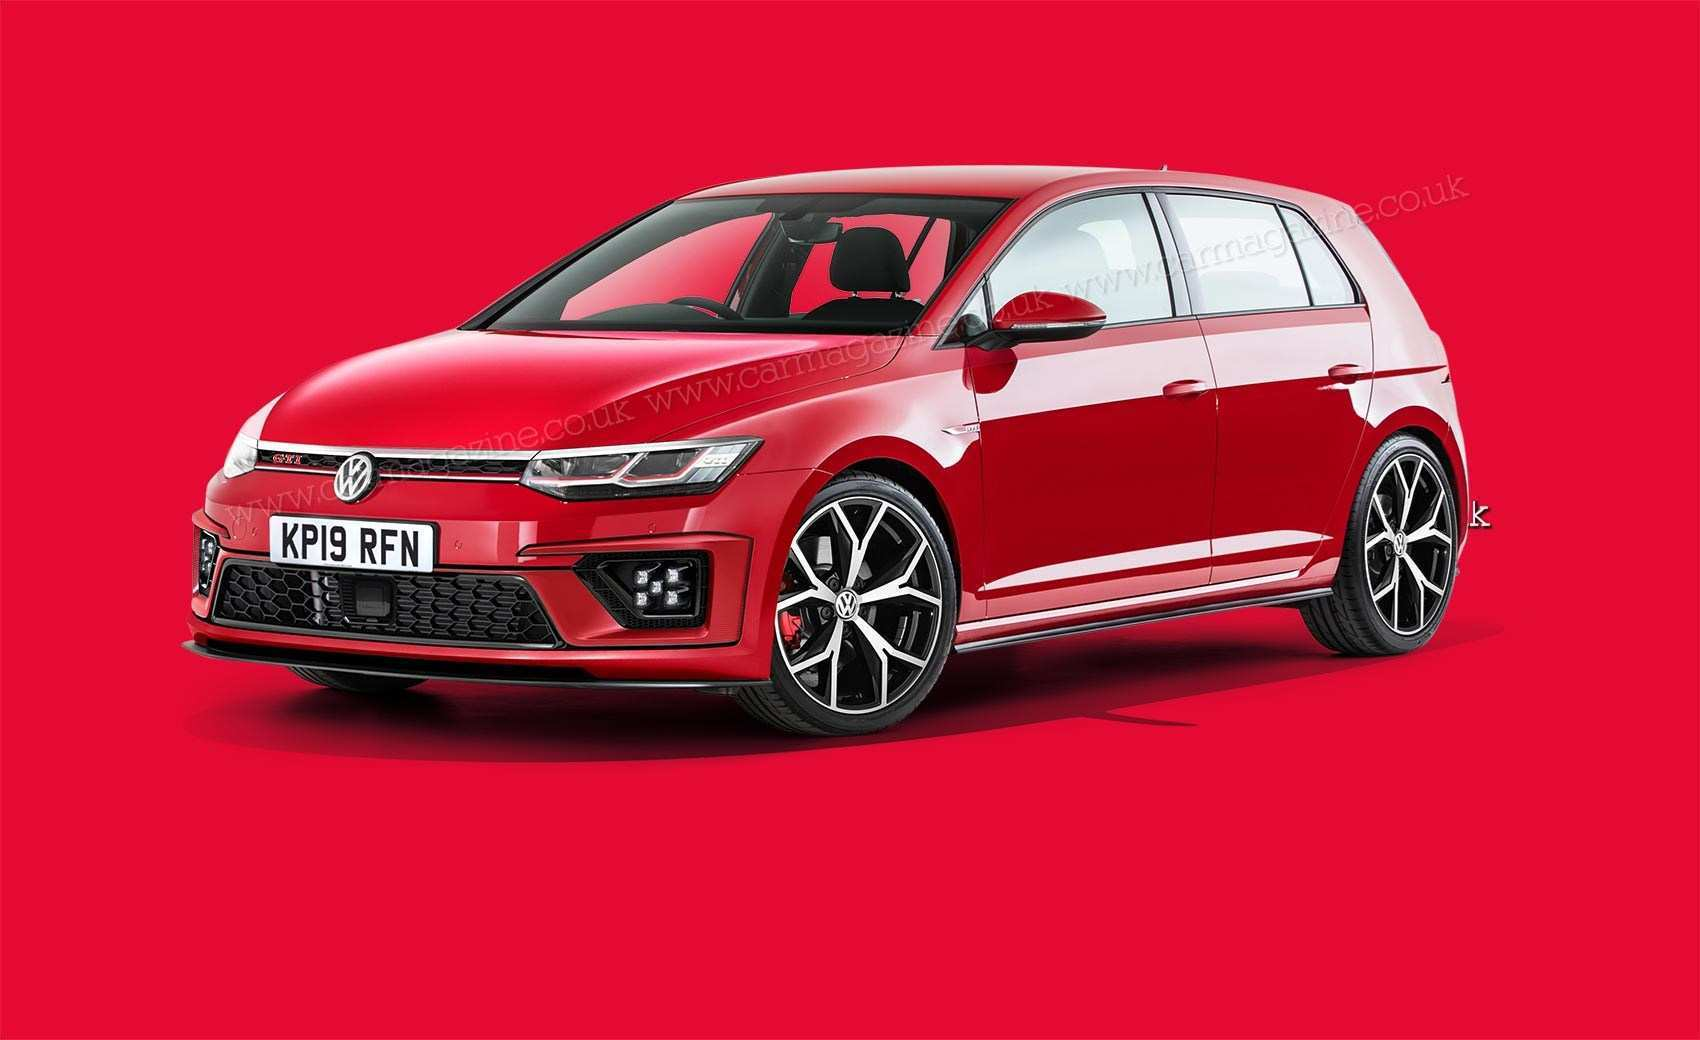 52 All New Volkswagen Golf Gti 2020 Pricing